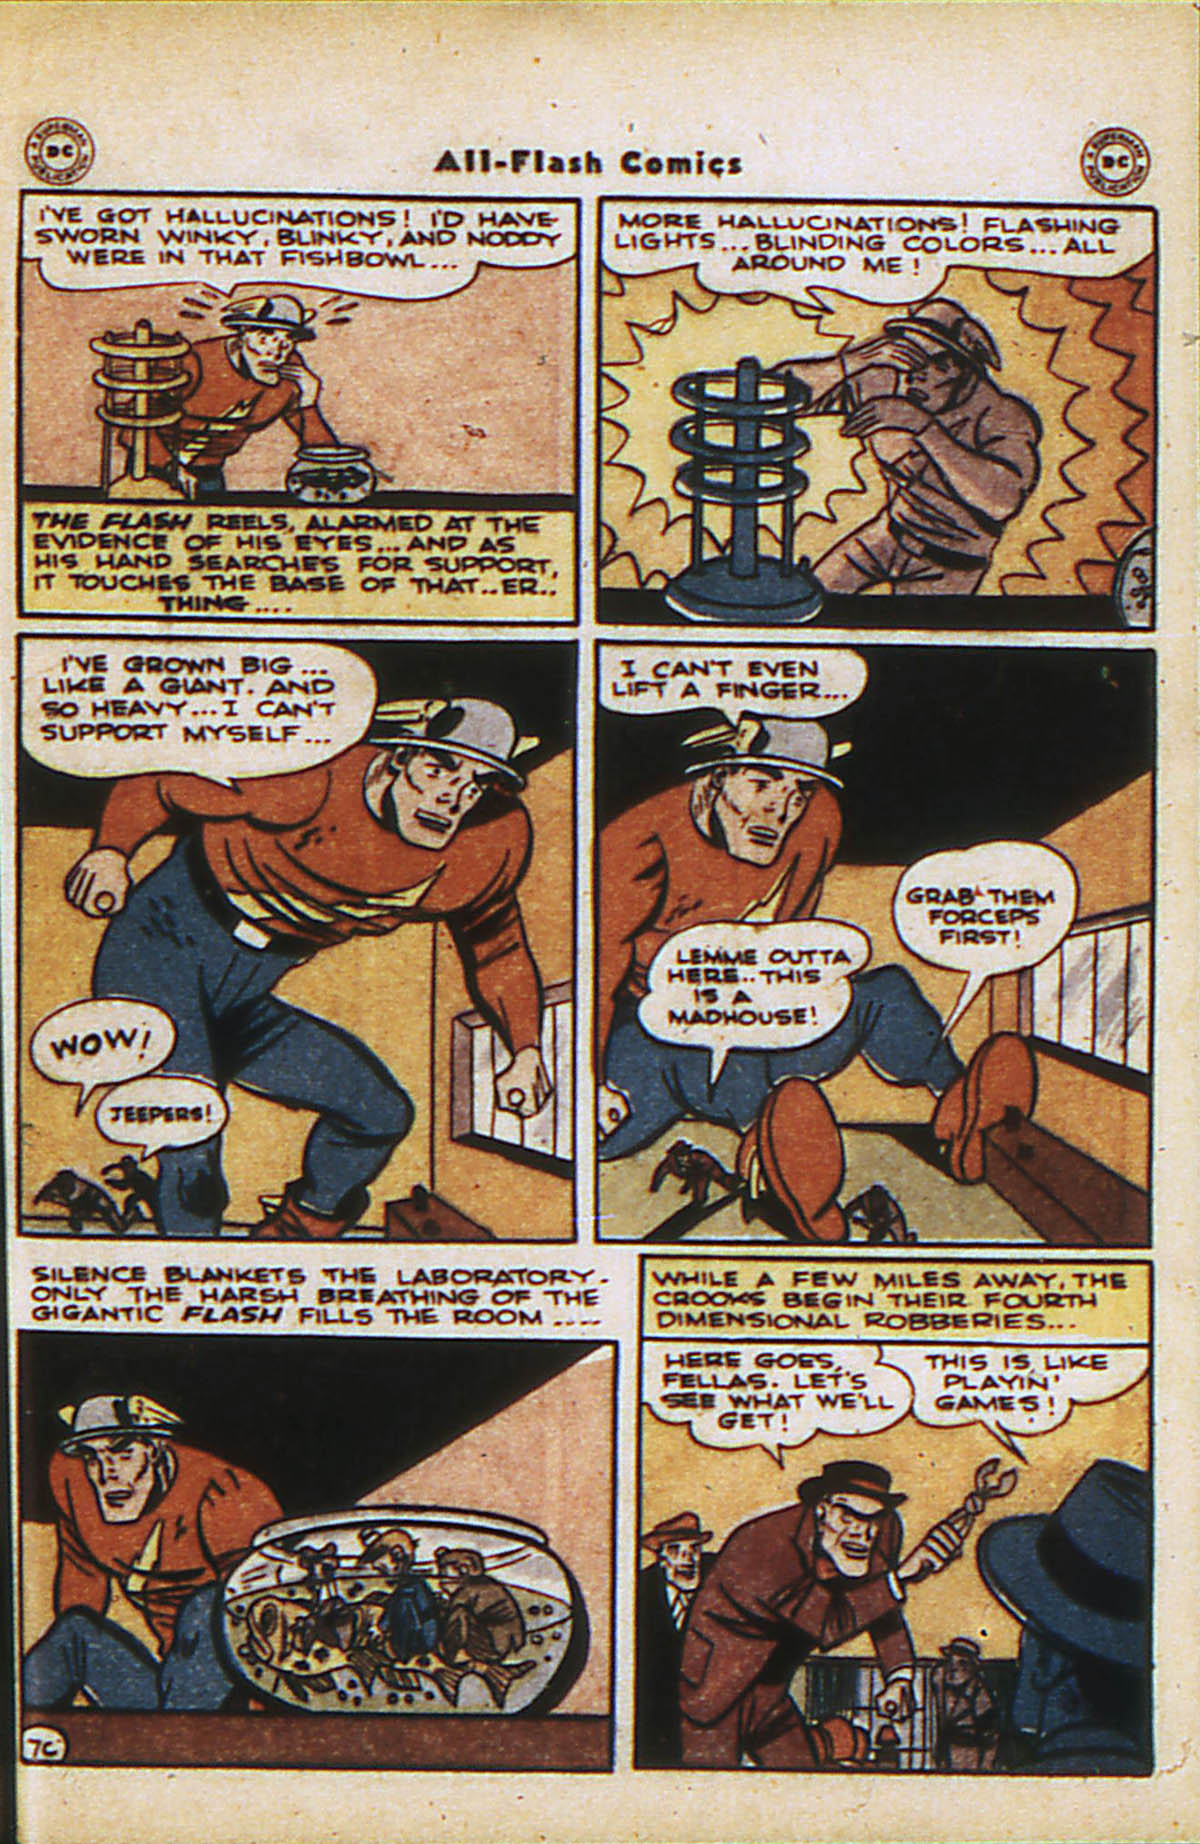 Read online All-Flash comic -  Issue #24 - 43